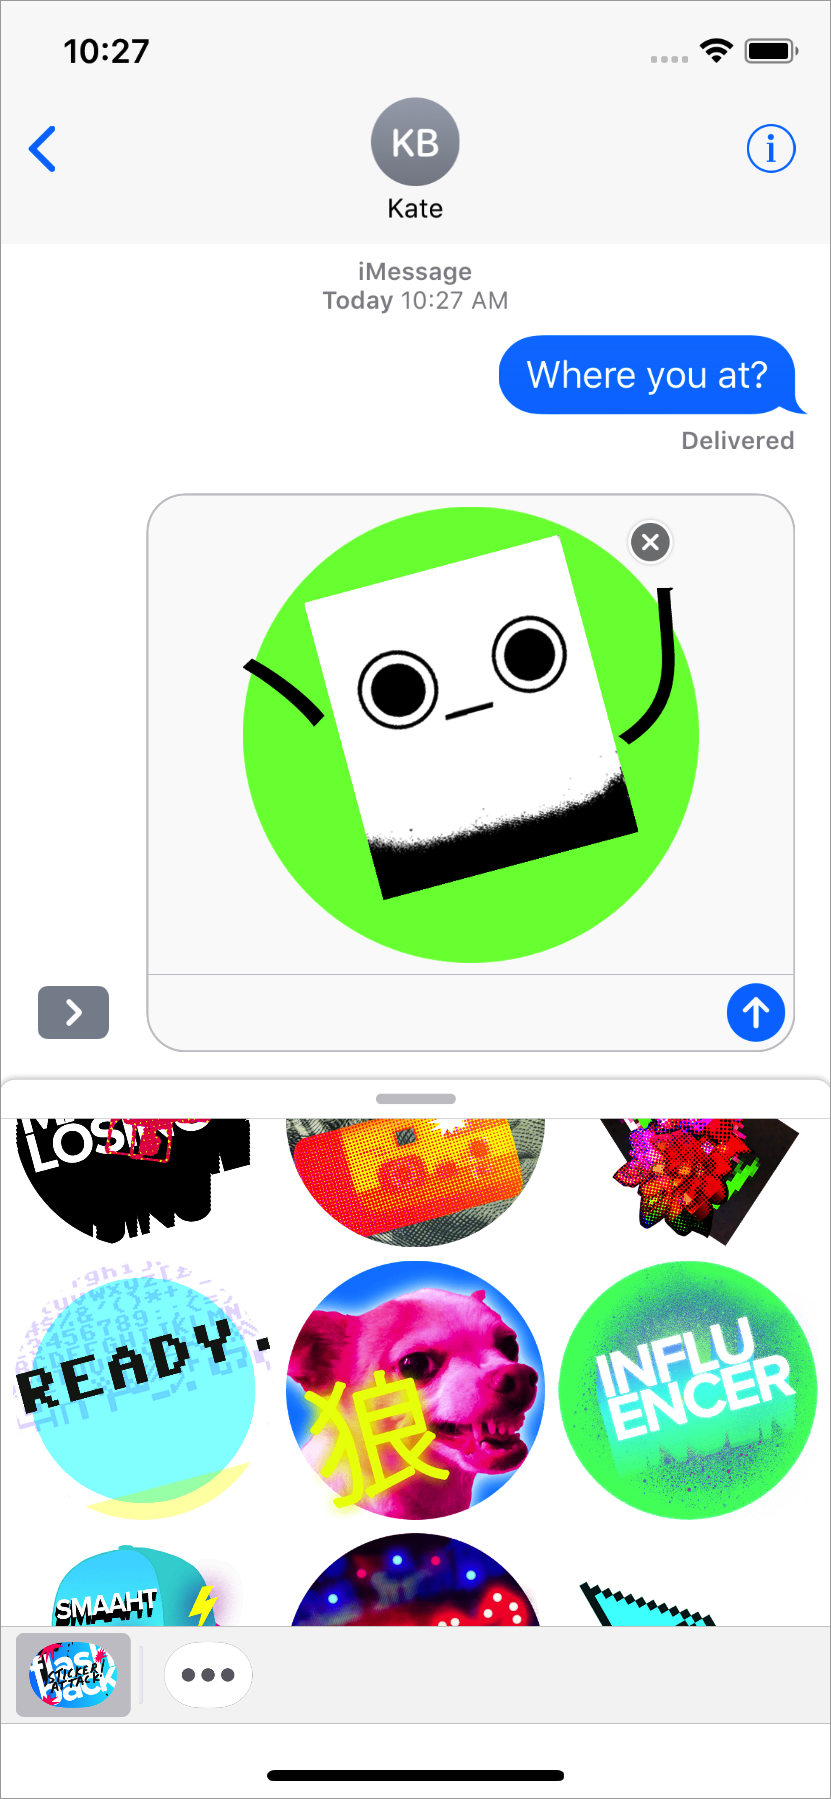 Flashback-Sticker-Attack-iMessage-02.png